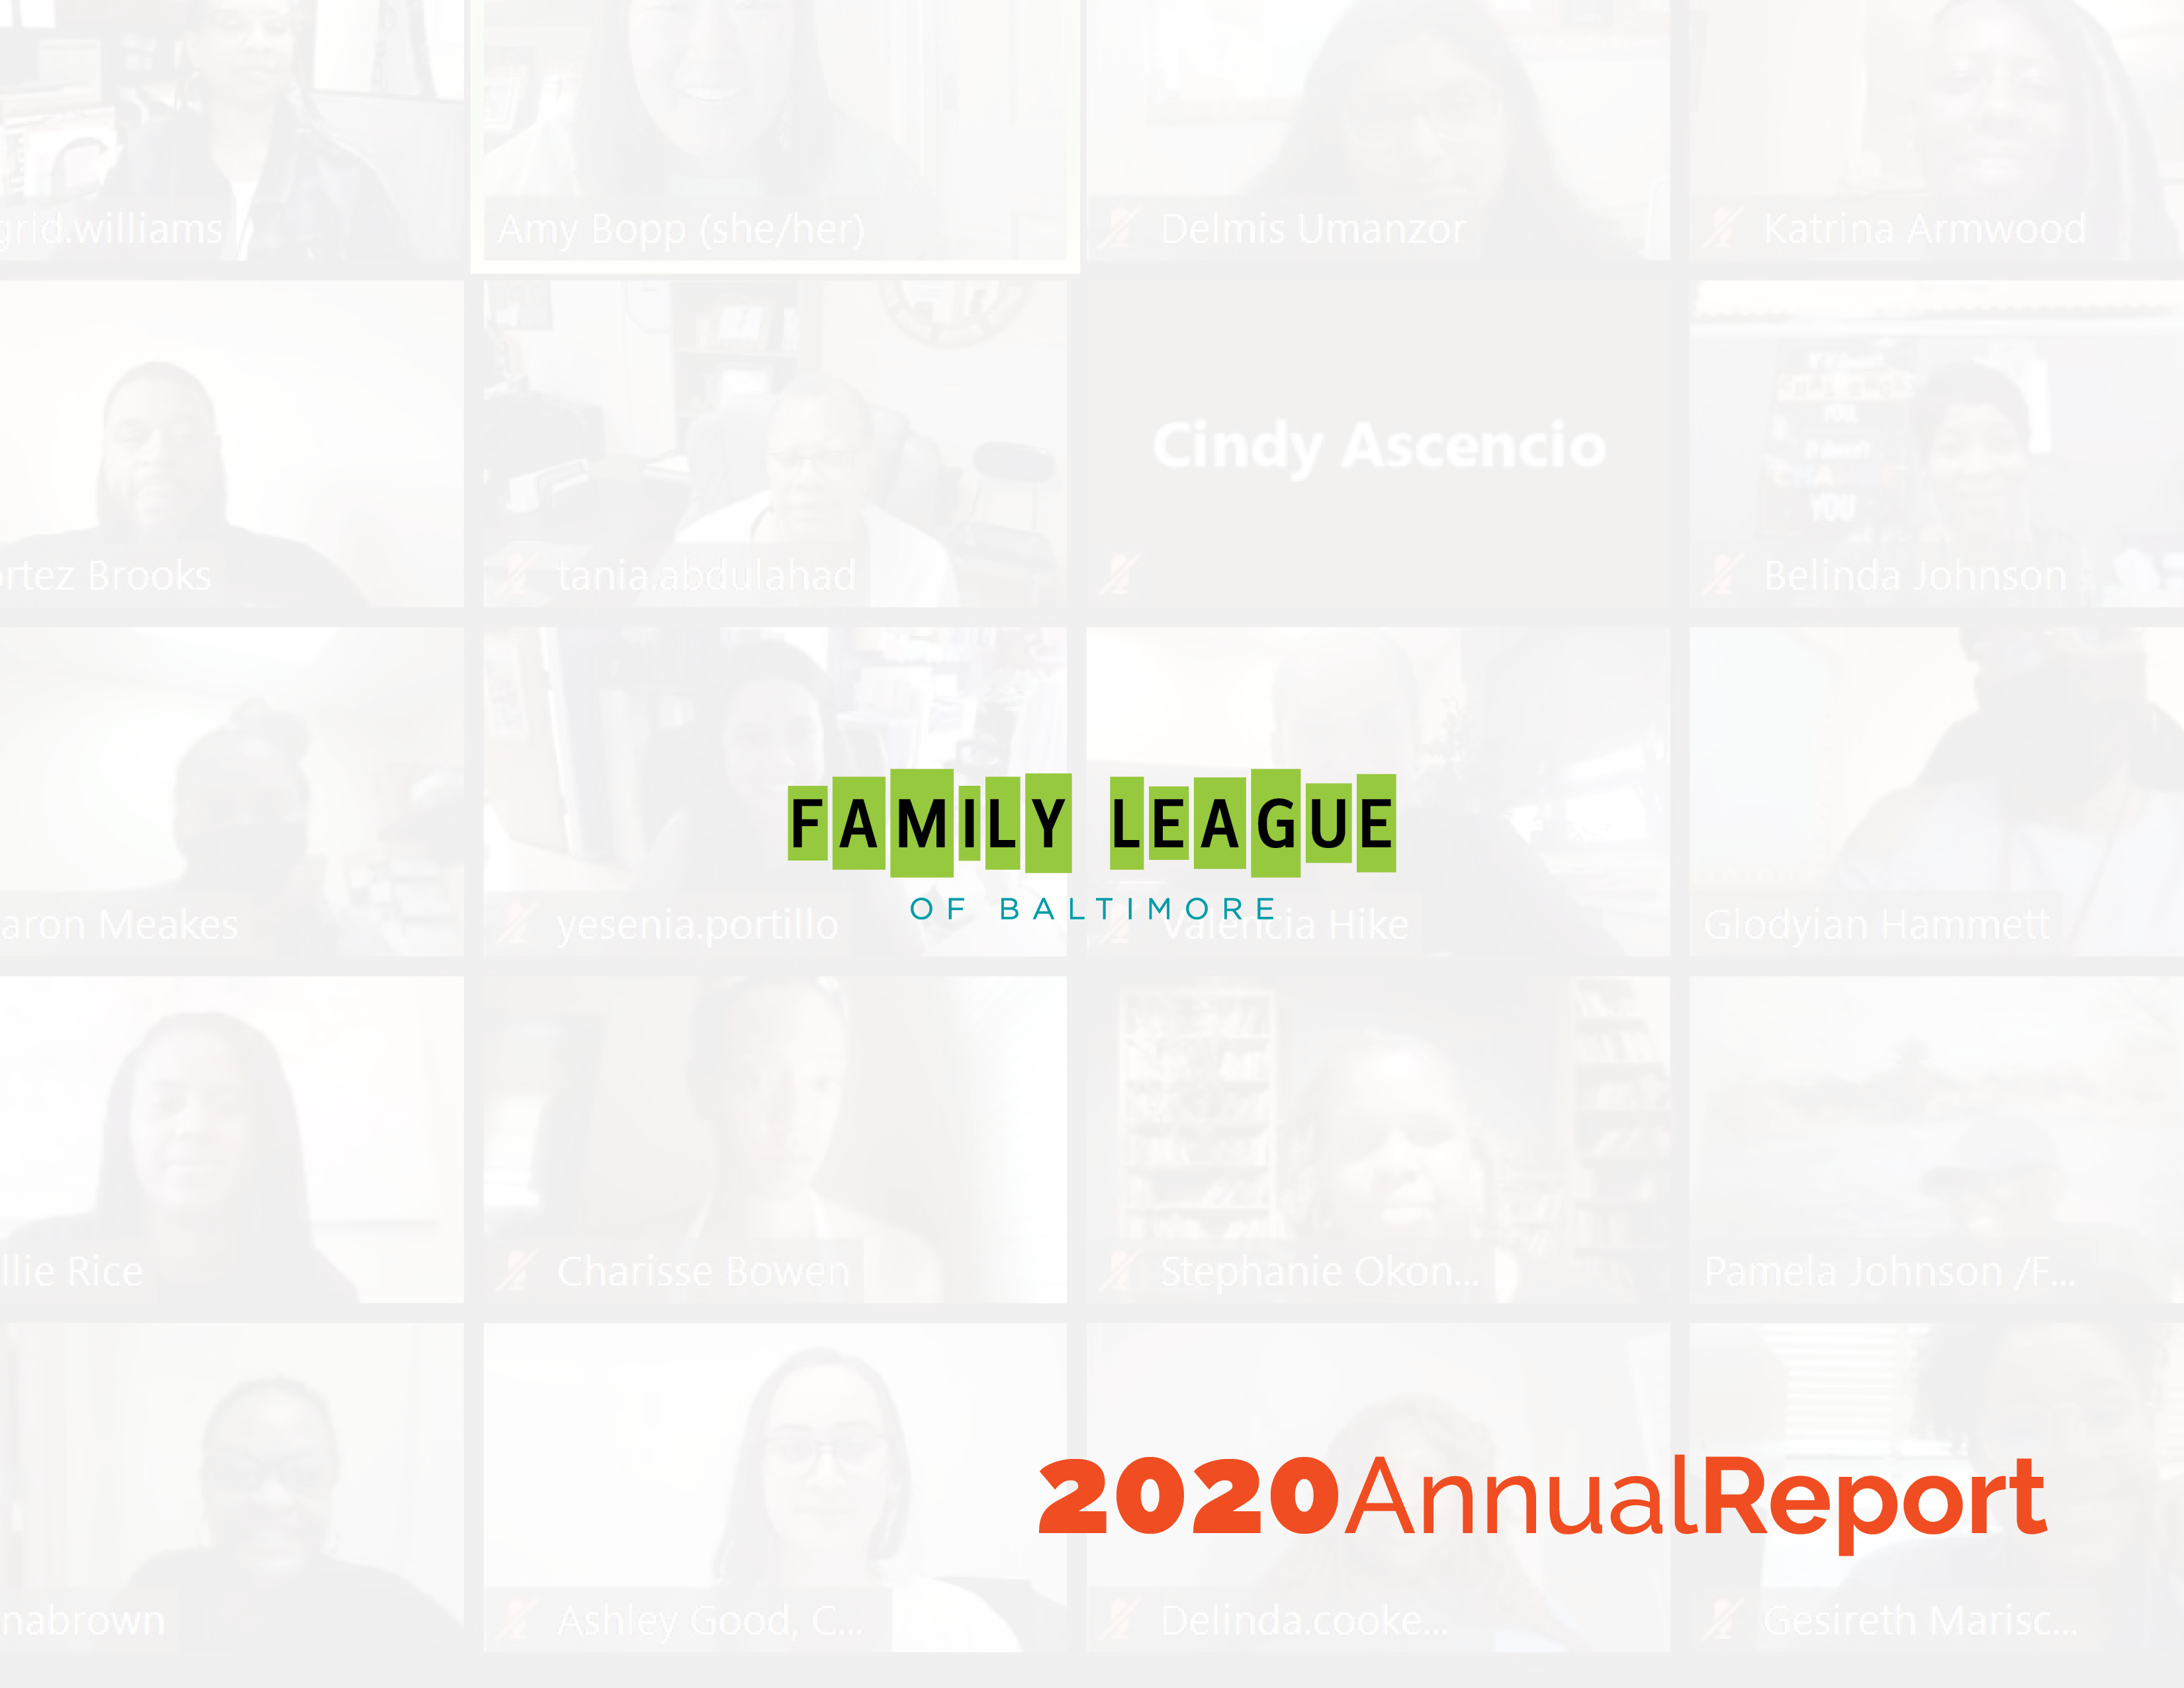 Family League 2020 Annual Report